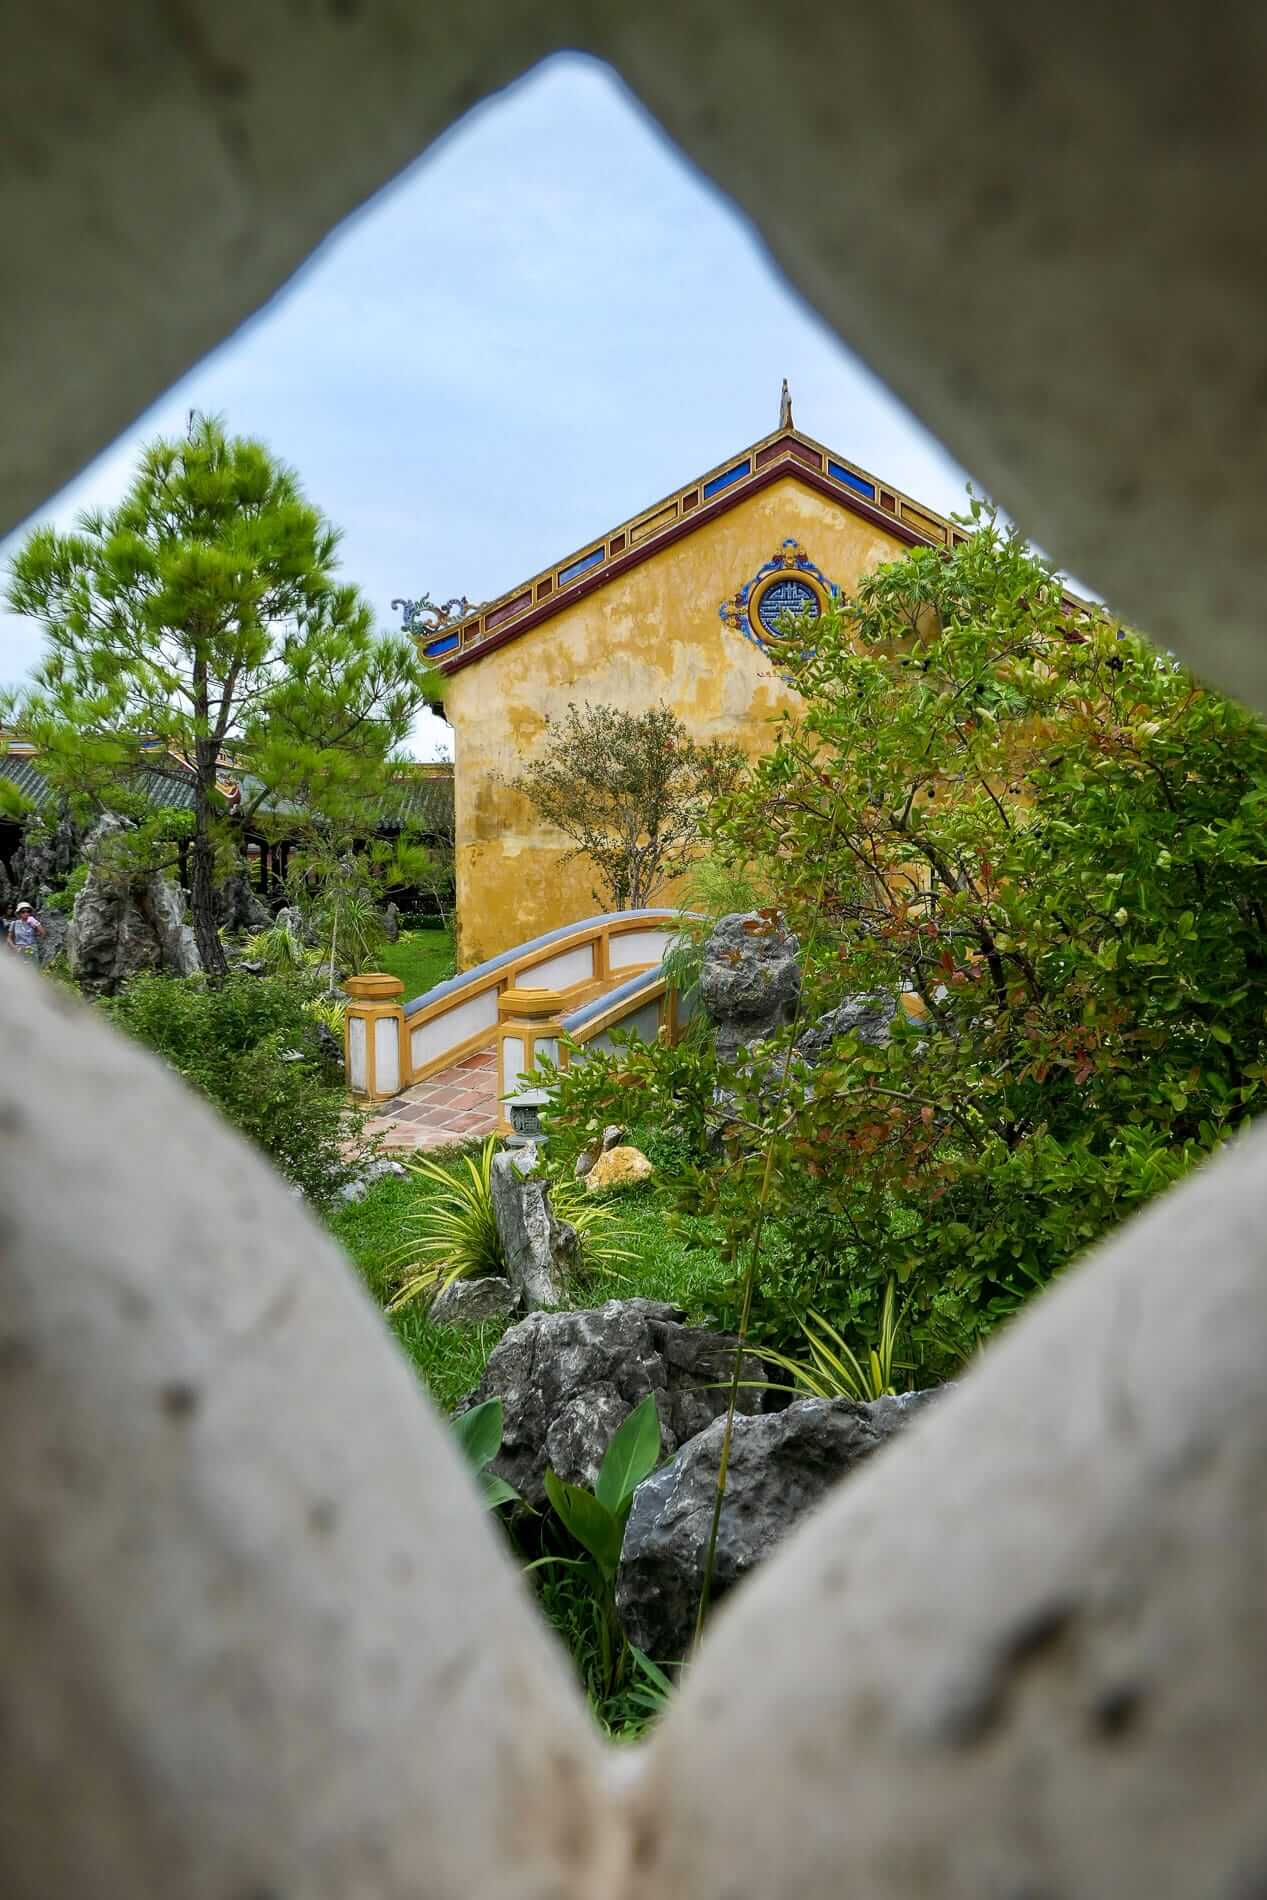 Ancient architecture and intricate details of the Hue Citadel